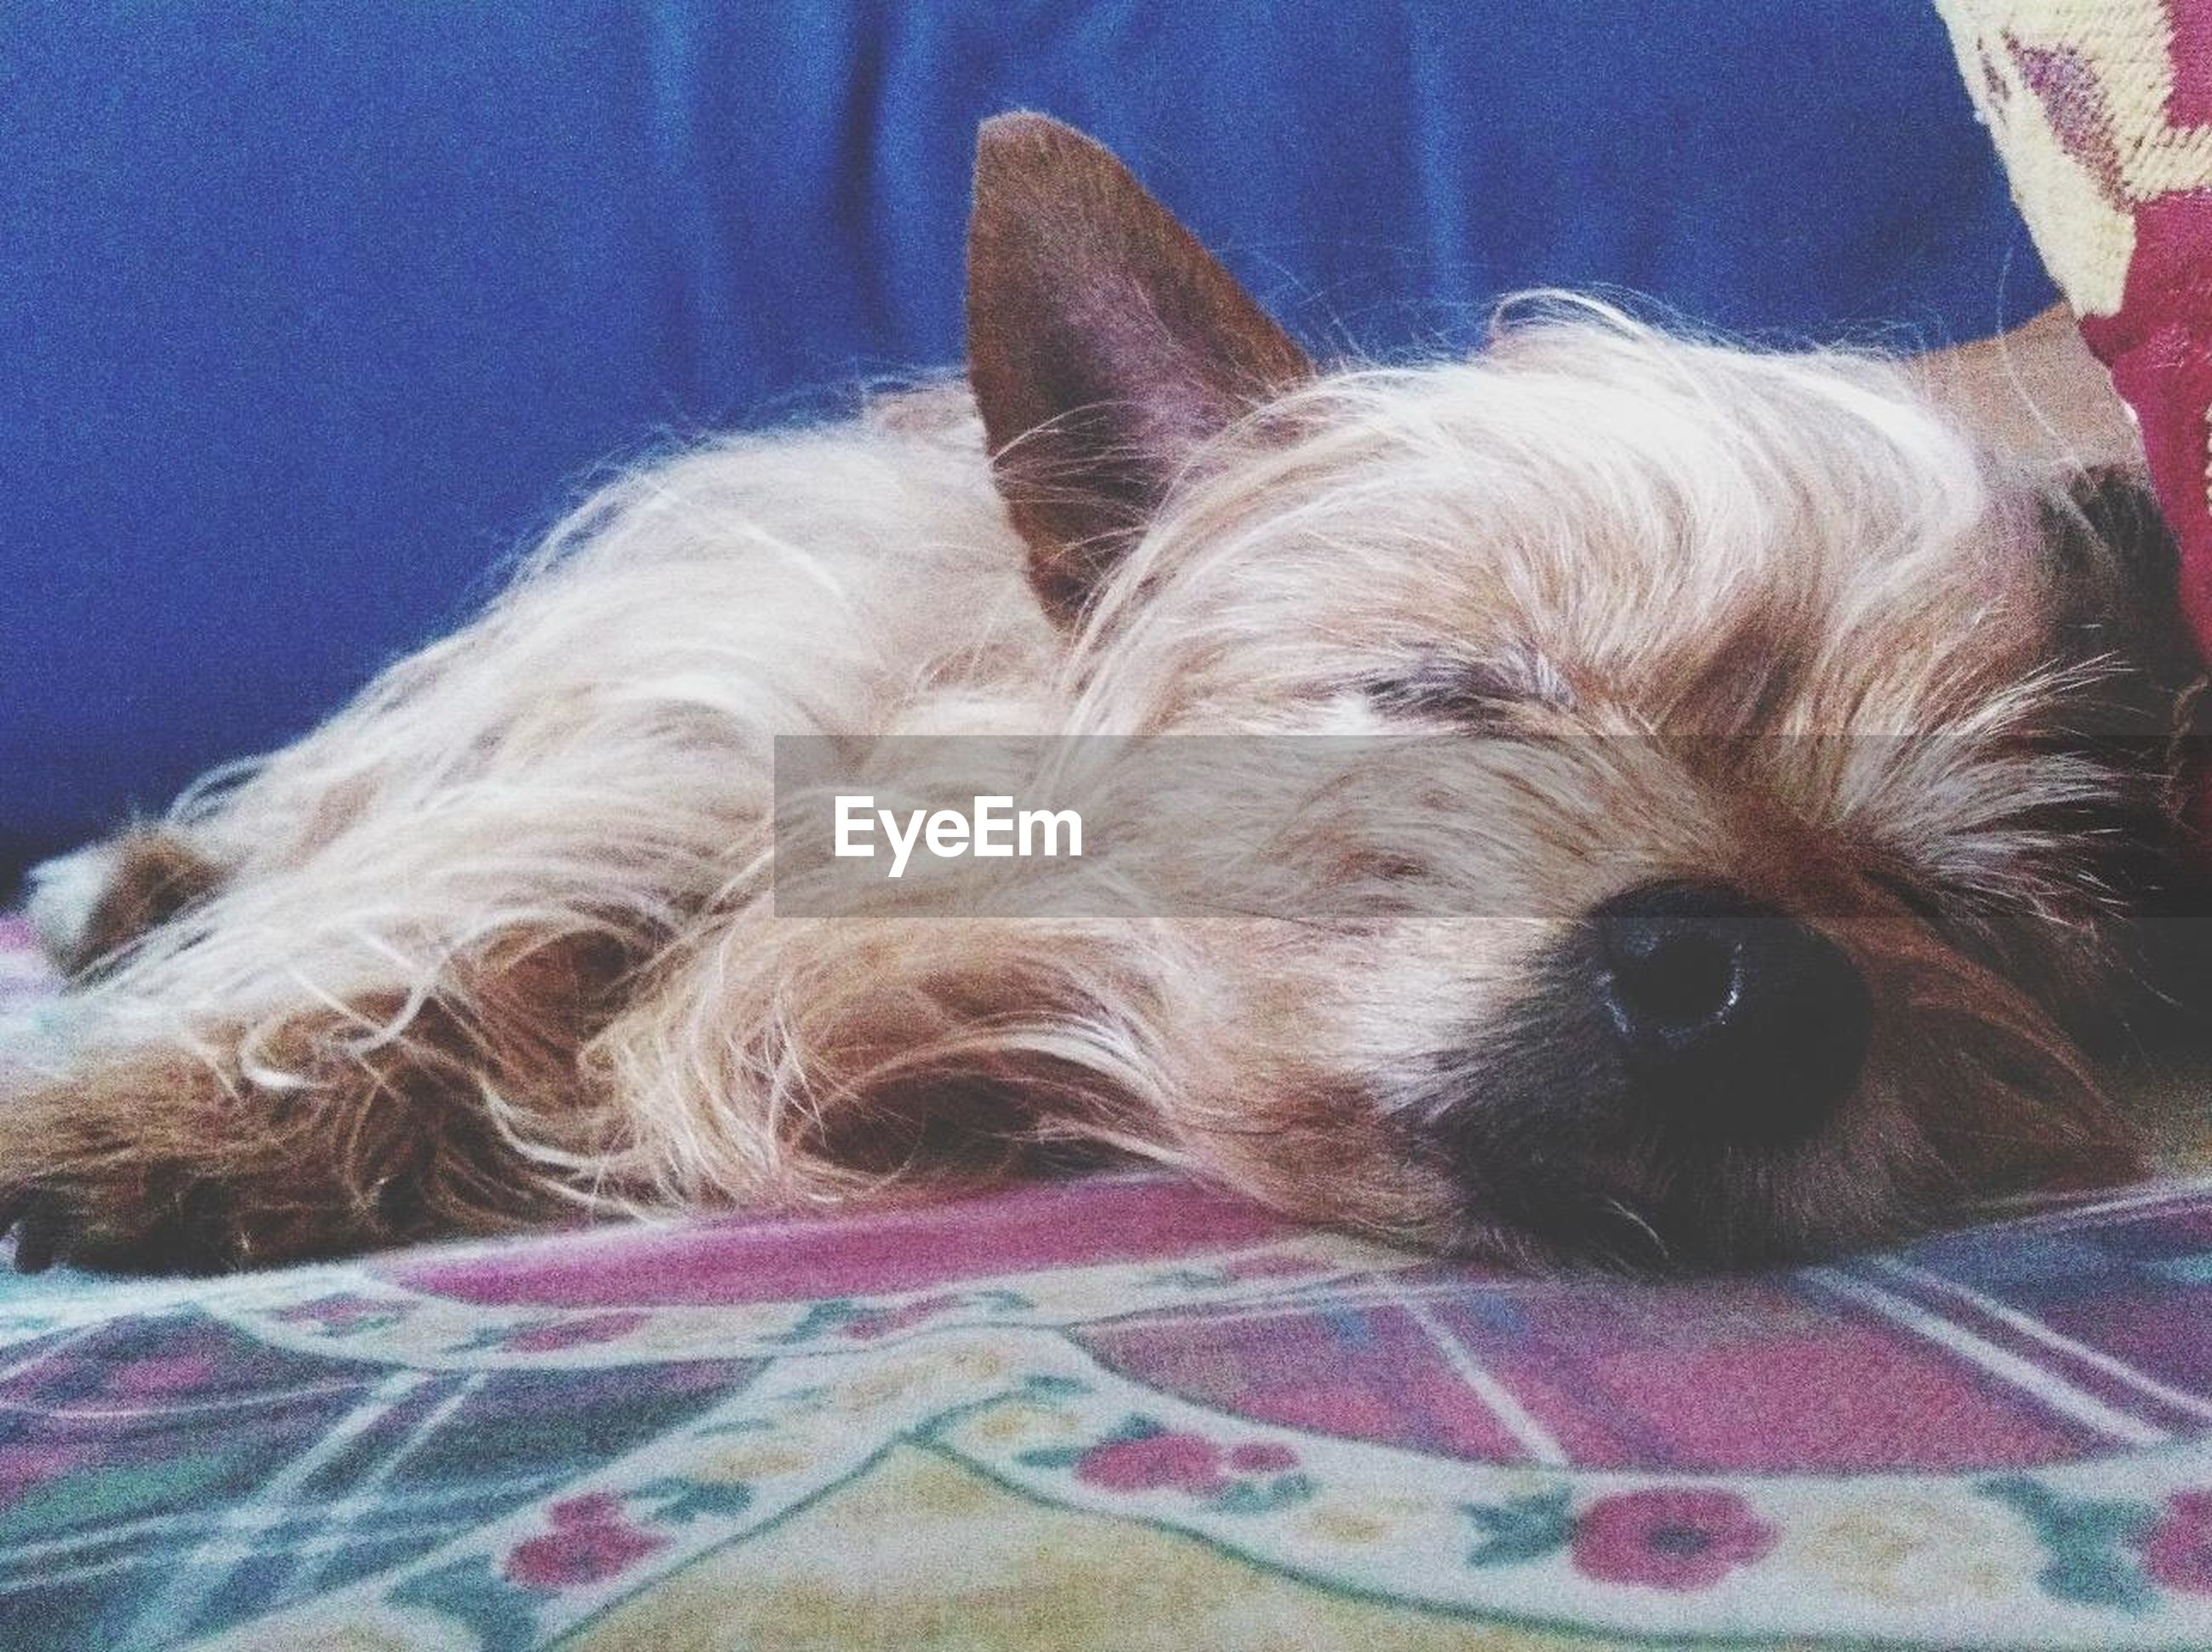 domestic animals, pets, one animal, dog, animal themes, mammal, indoors, relaxation, close-up, animal head, resting, lying down, animal hair, bed, home interior, animal body part, sleeping, no people, portrait, sofa